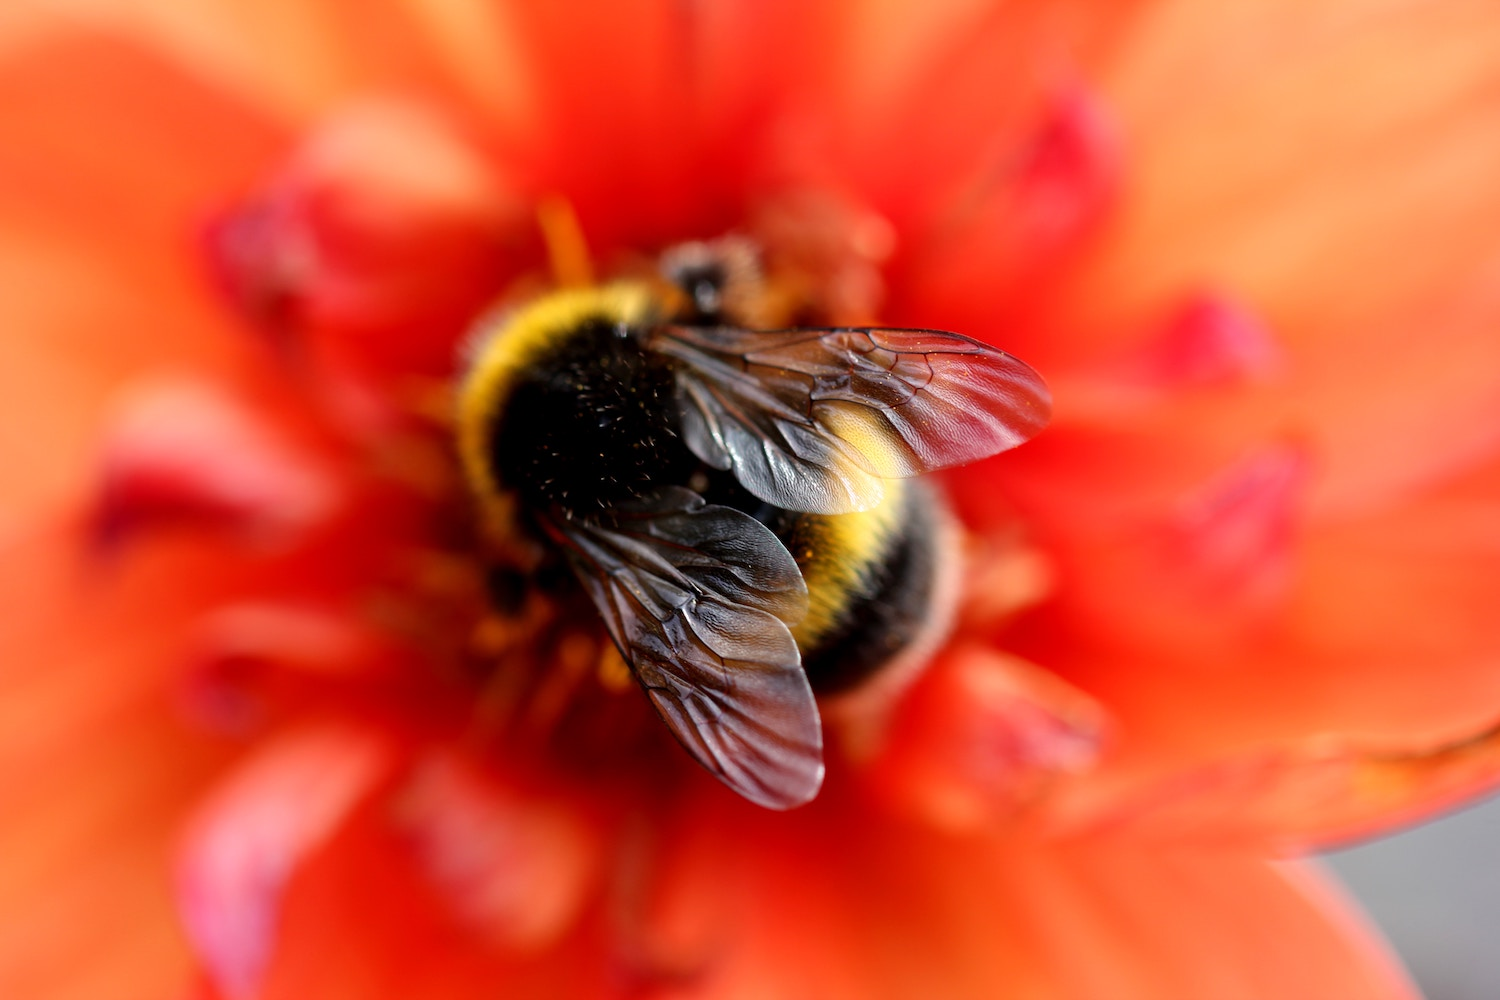 Free online gardening tool launched to help people support pollinators